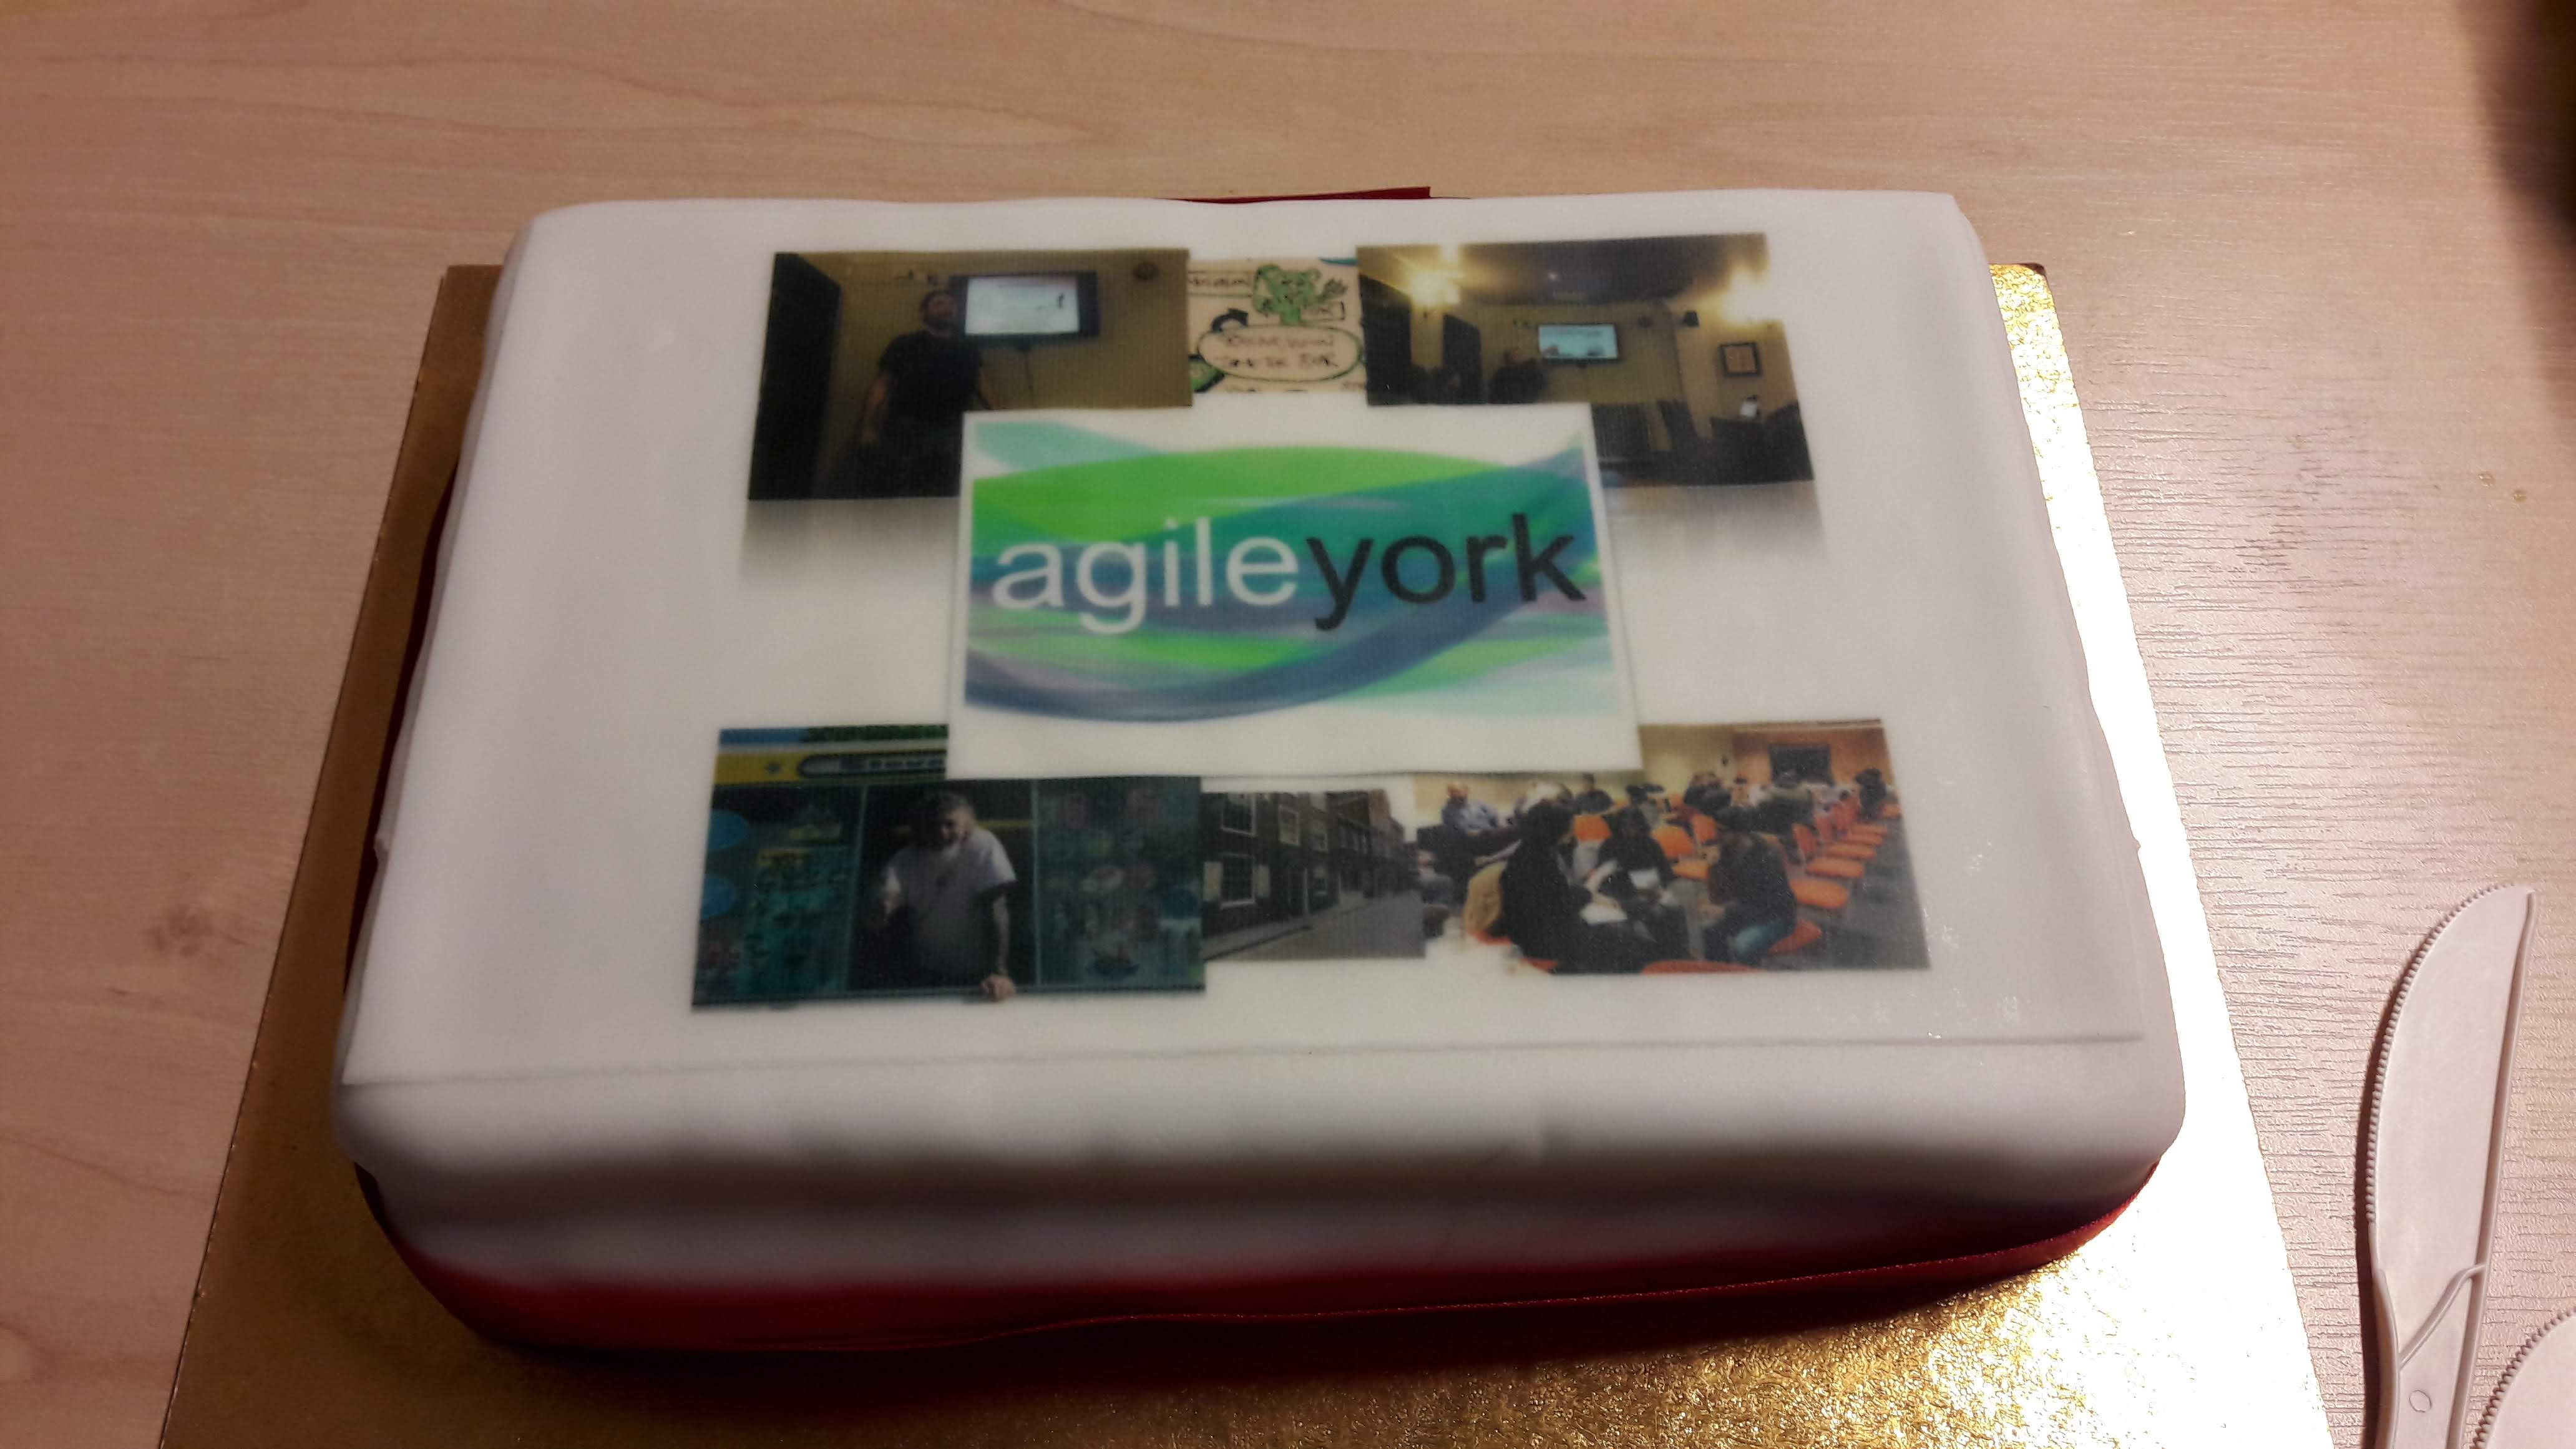 Agile York is 1 year old!